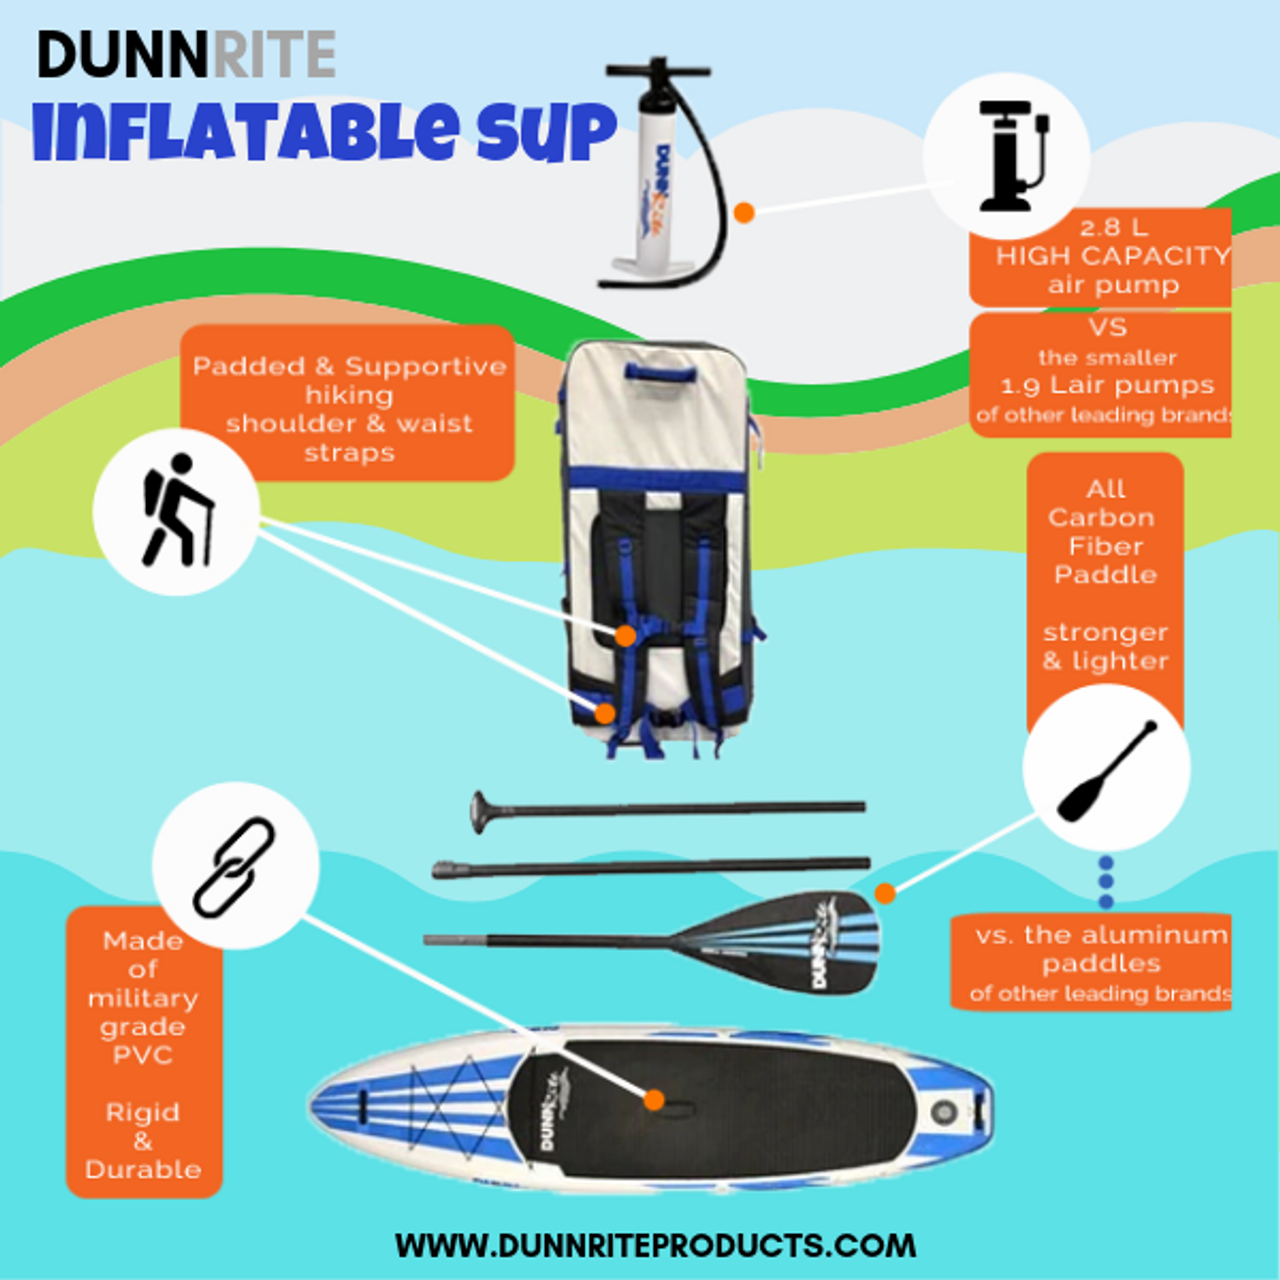 Dunn Rite Inflatable SUP Inflatable stand up paddleboard